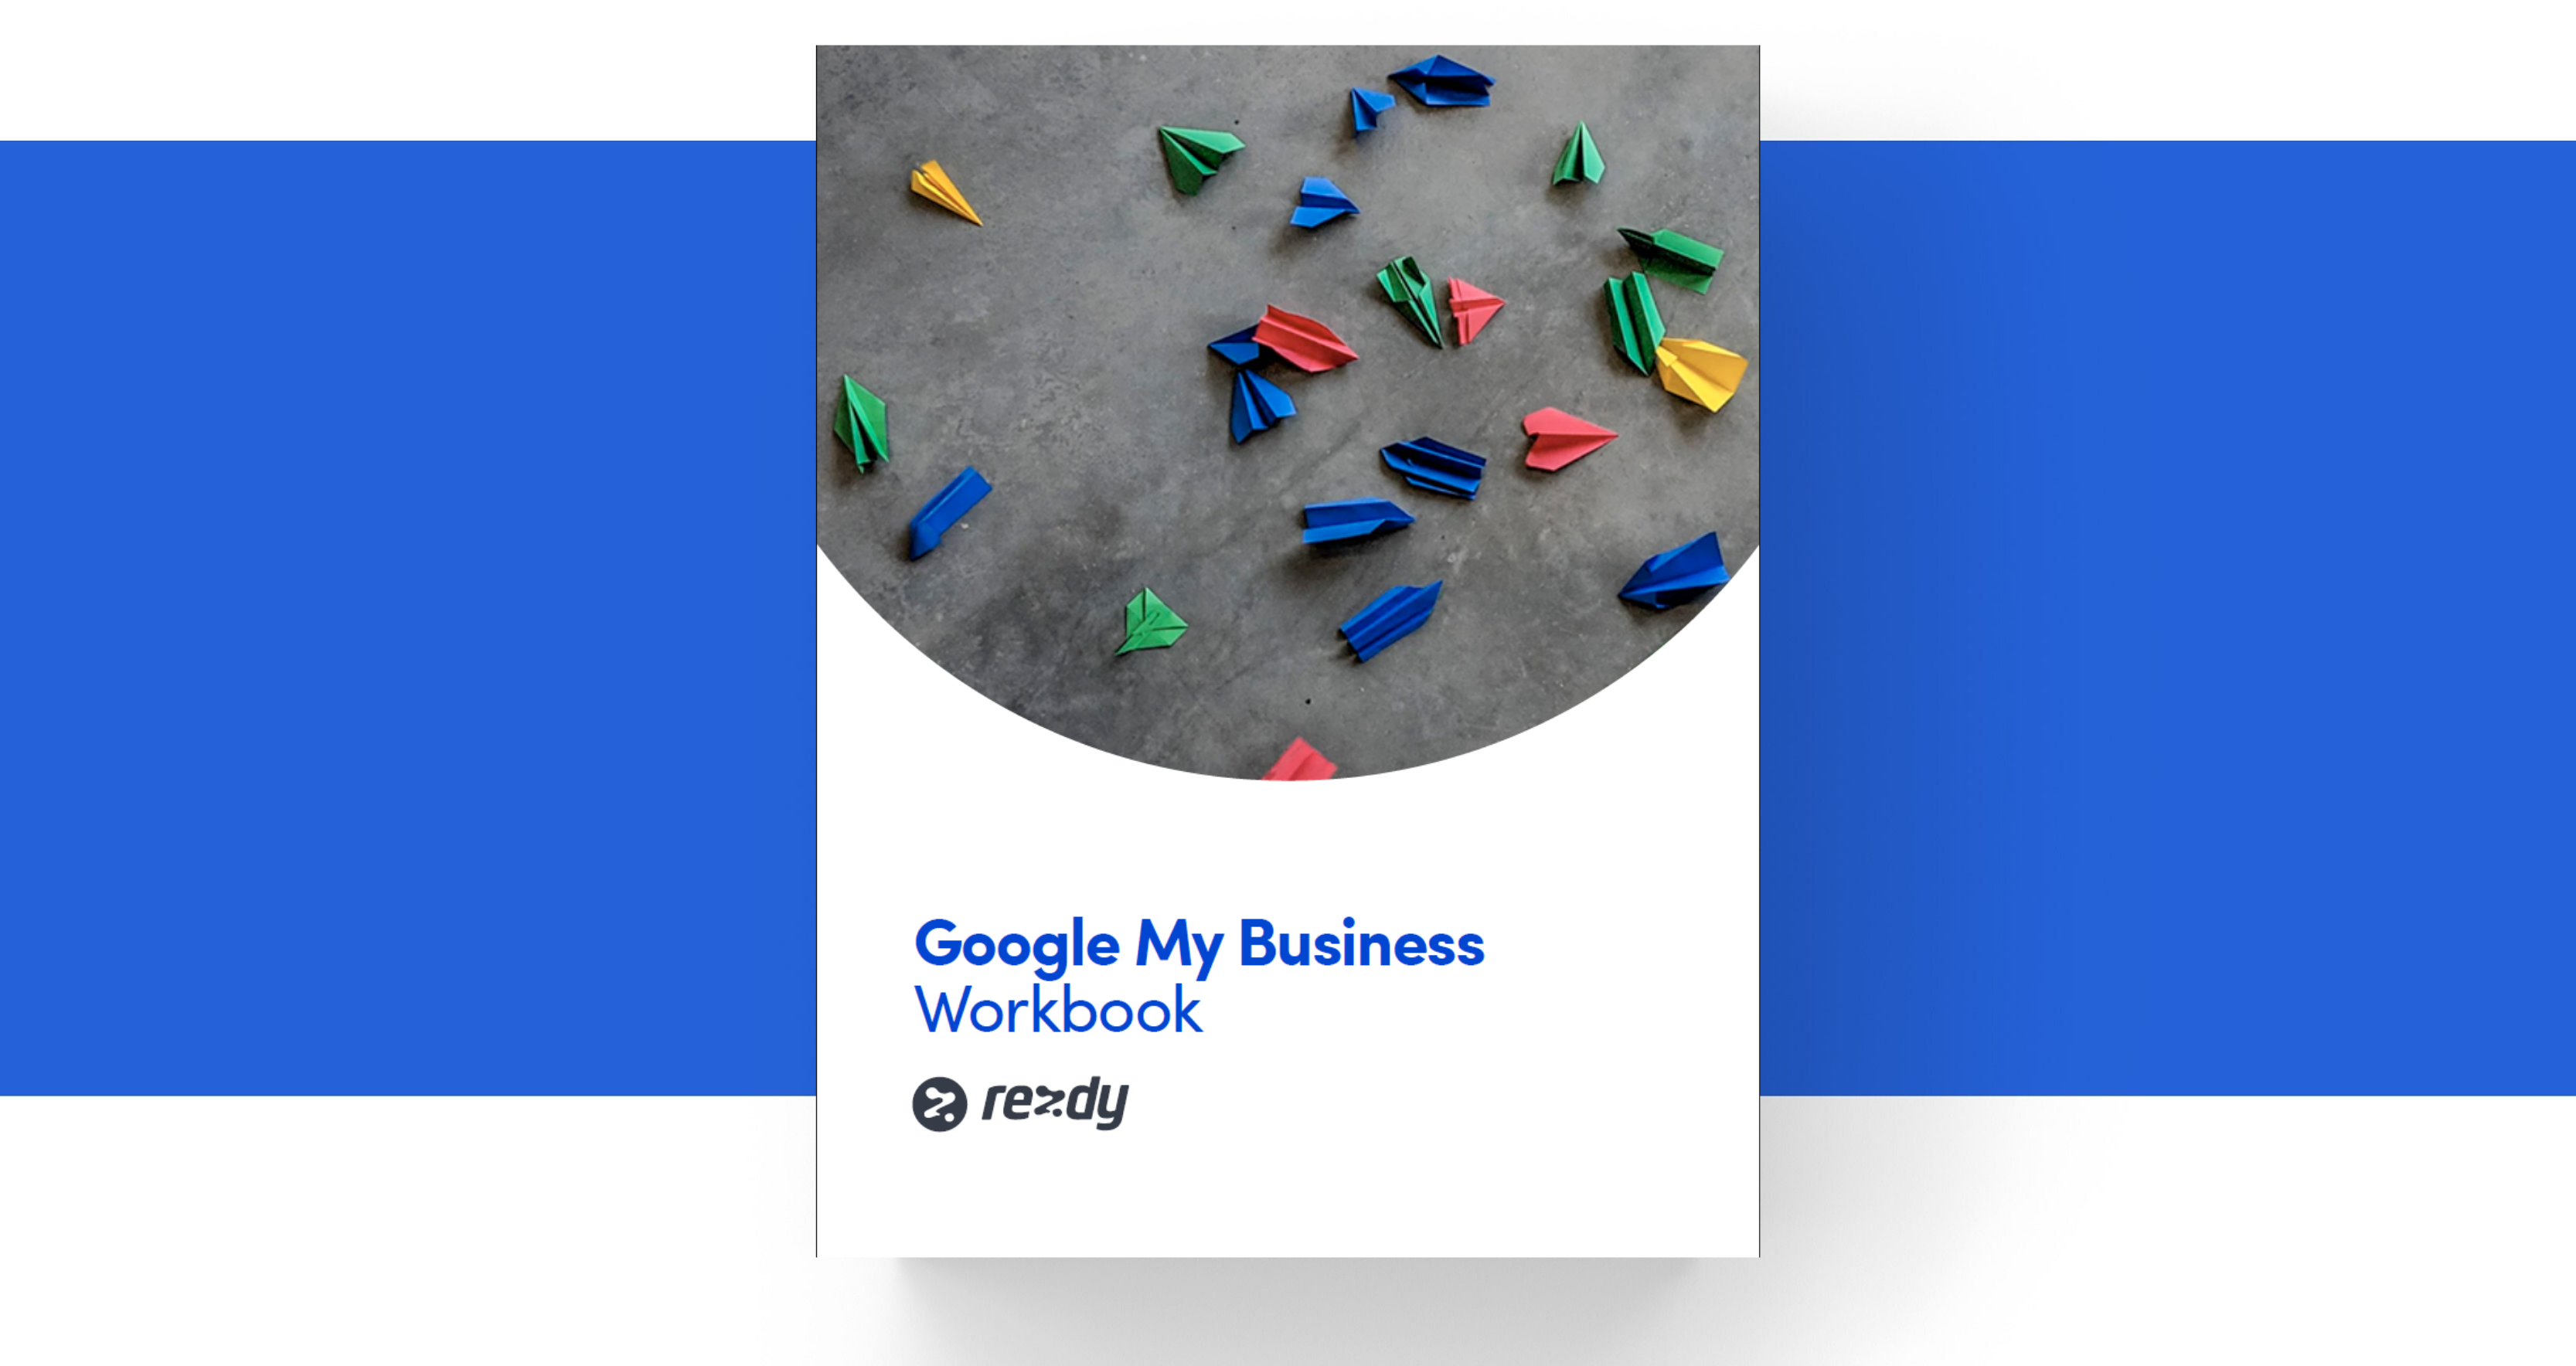 How to set up Google My Business: Workbook